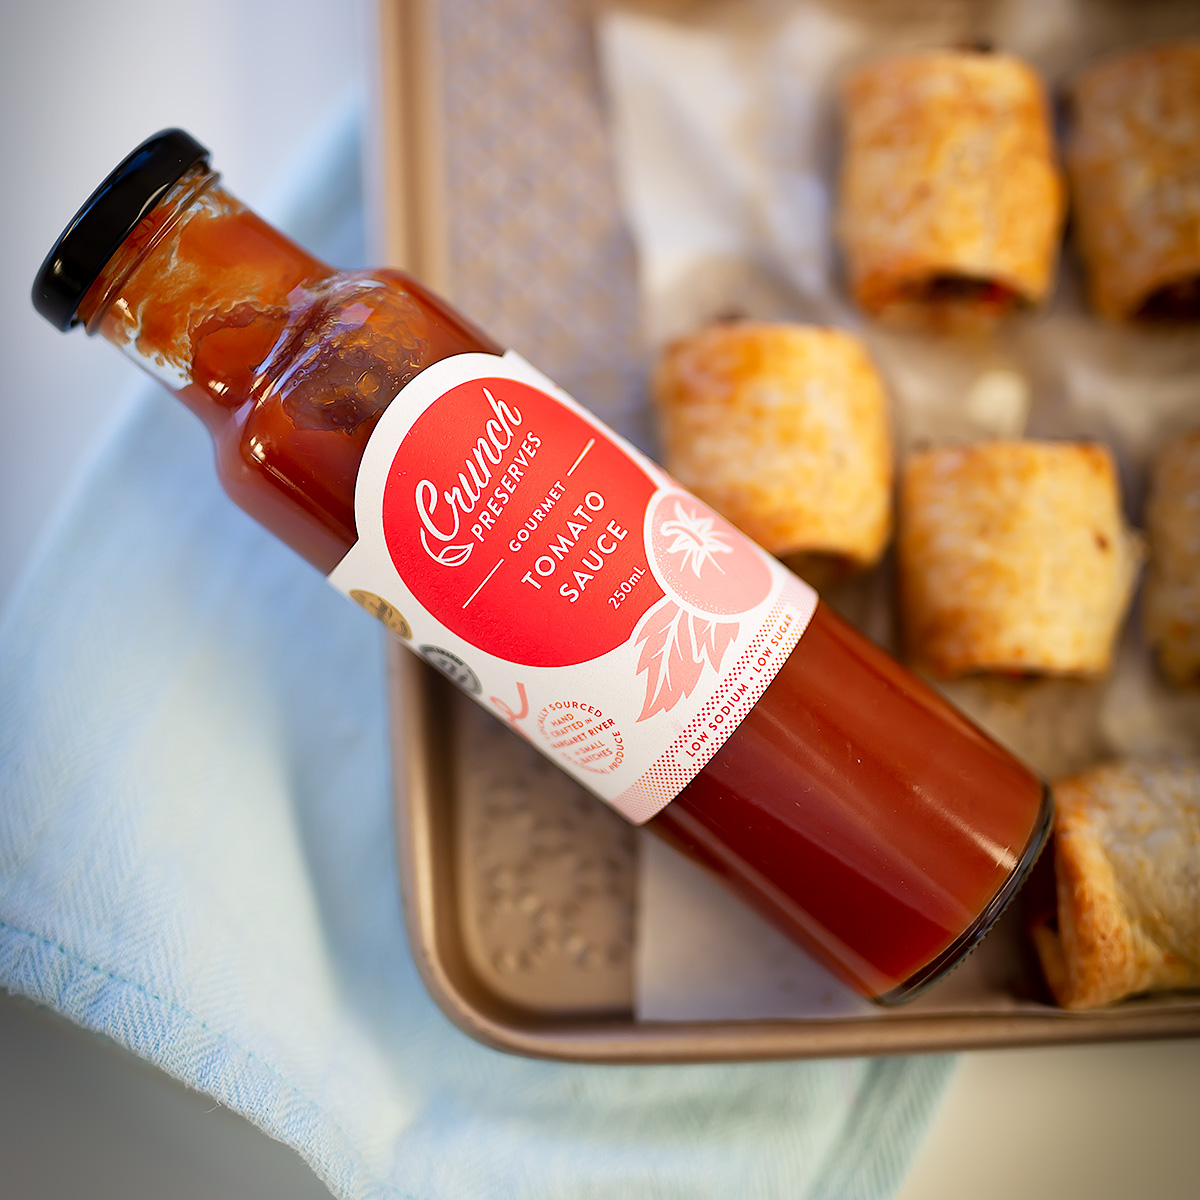 Crunch Preserves Healthy Sausage Rolls & Sauce recipe